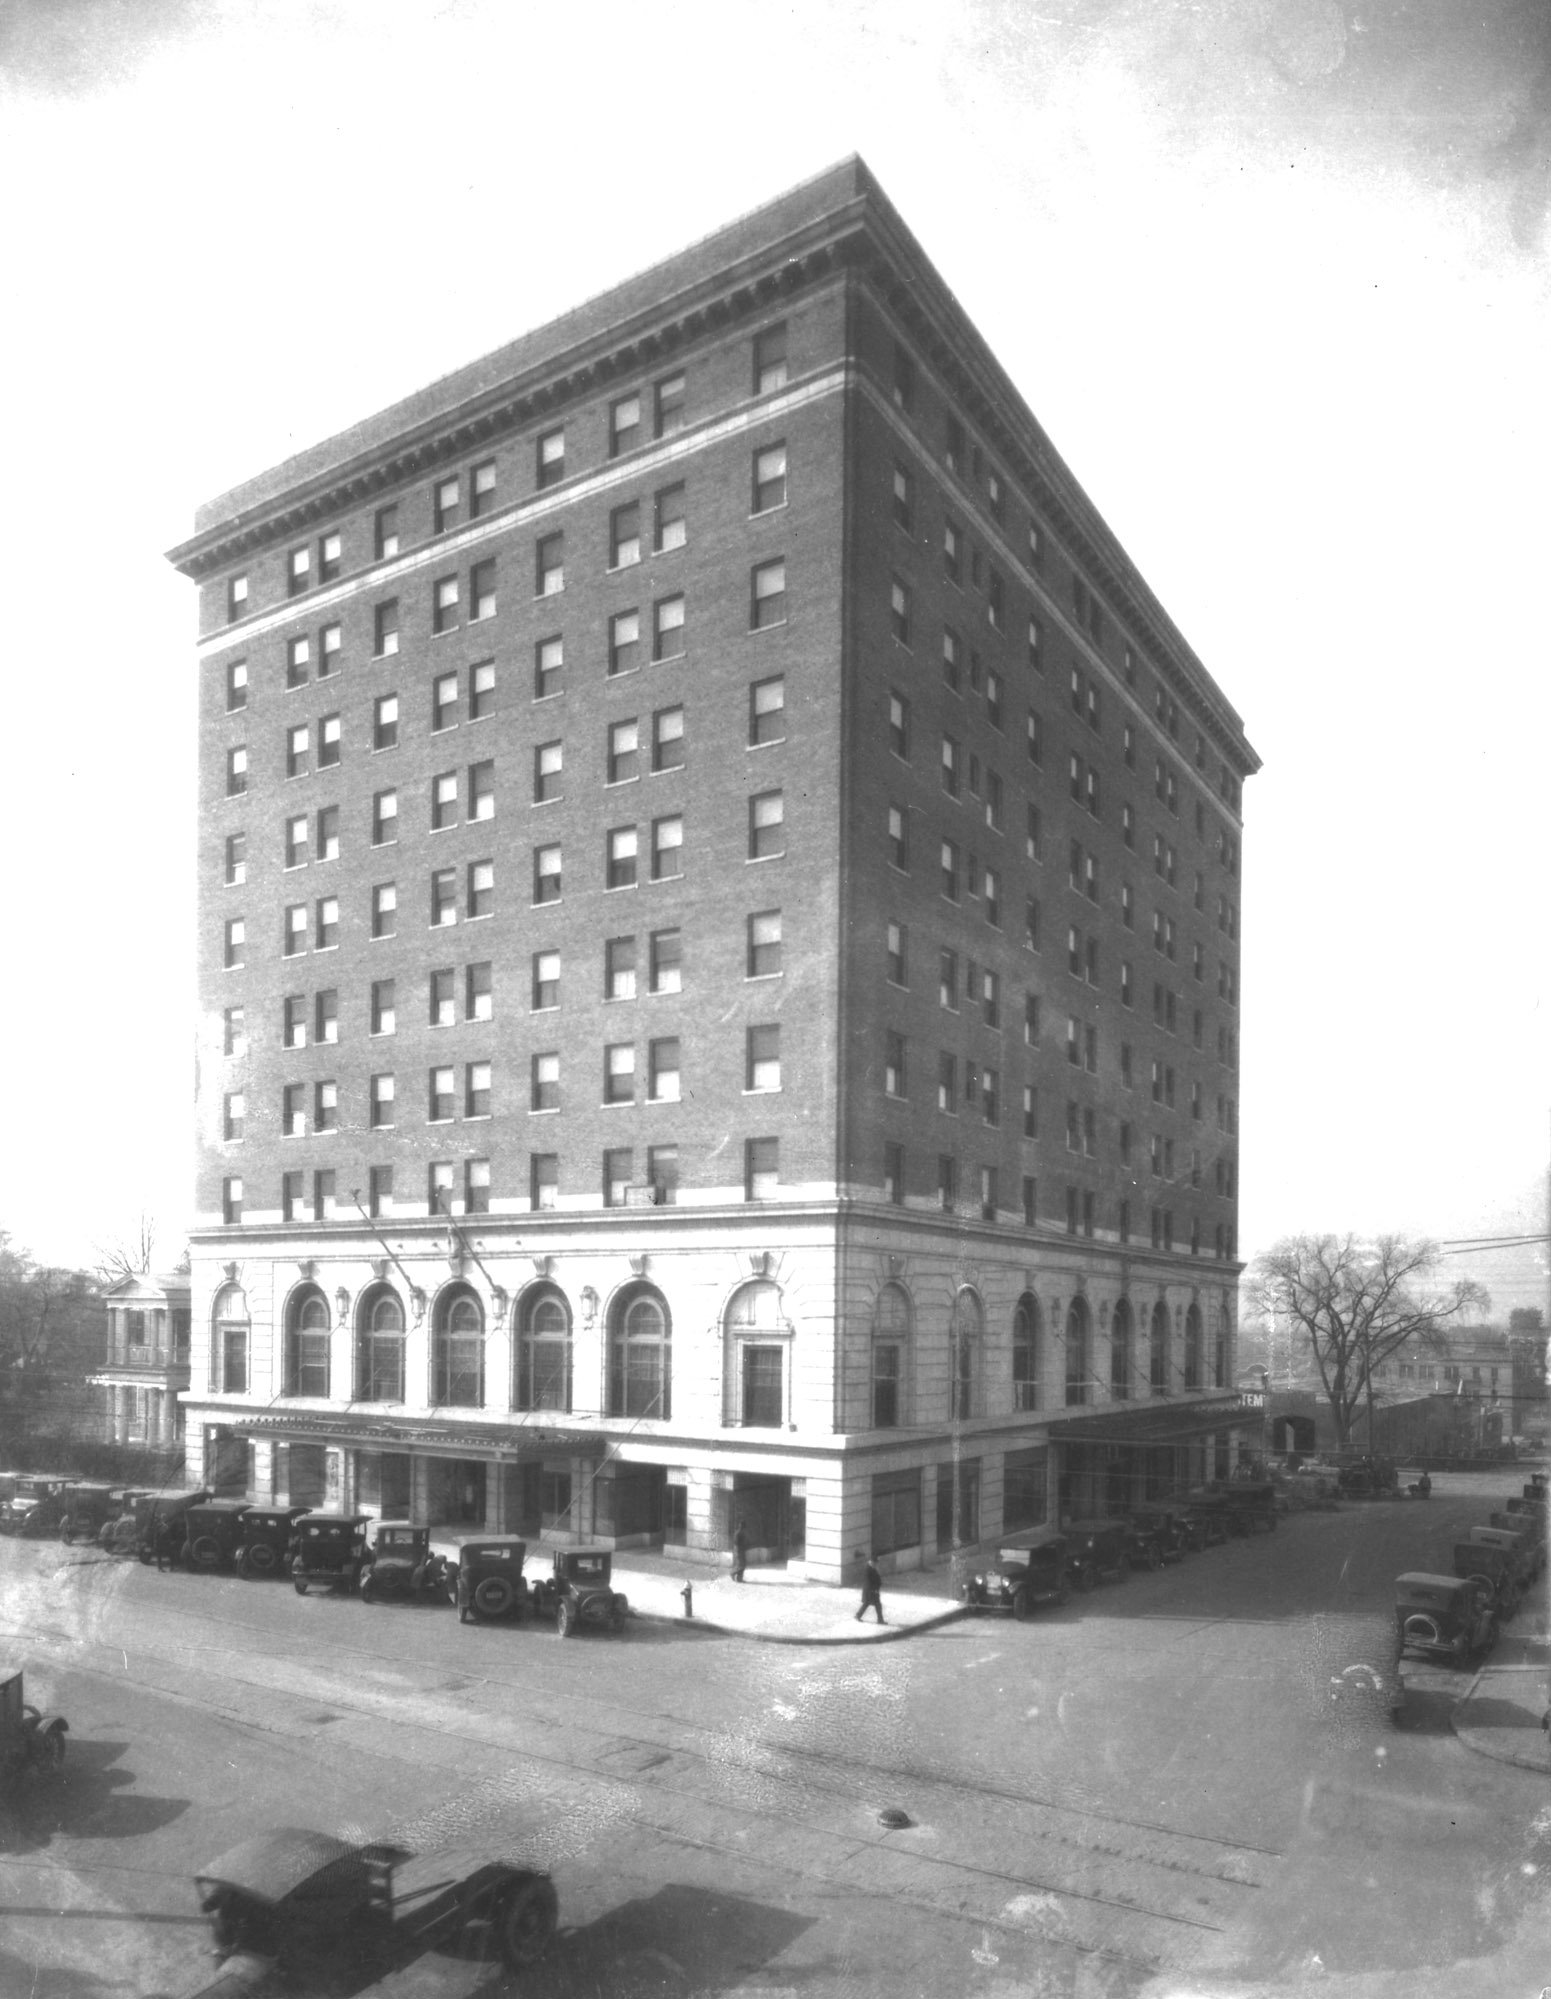 The Sir Walter Hotel in the 1920s. Photo from the State Archives of North Carolina.